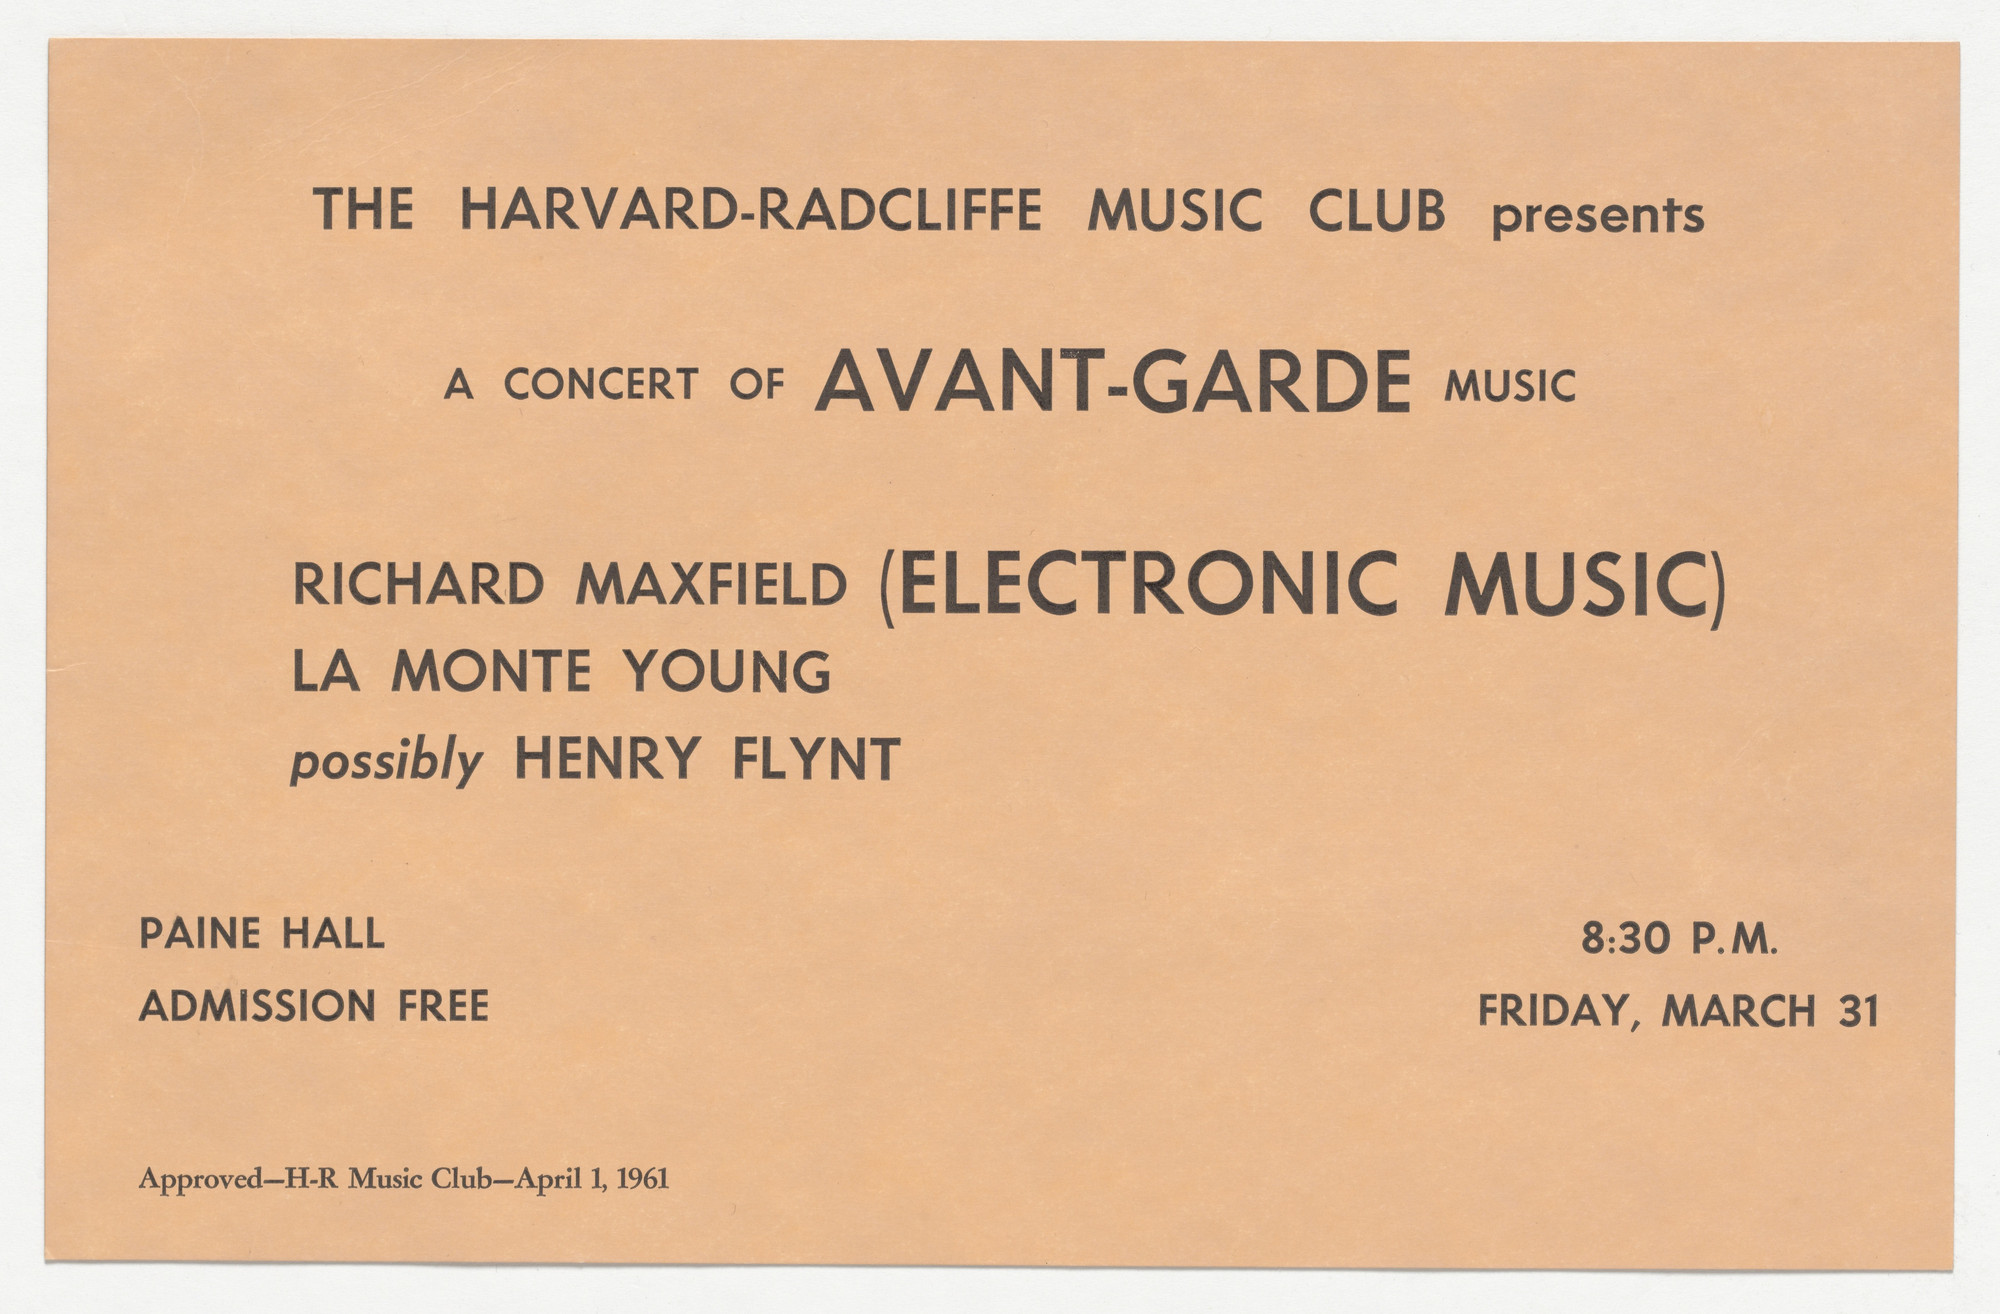 Henry Flynt, La Monte Young, Richard Maxfield. Flyer for A Concert of Avant-Garde Music, The Harvard-Radcliffe Music Club, March 31, 1961. 1961